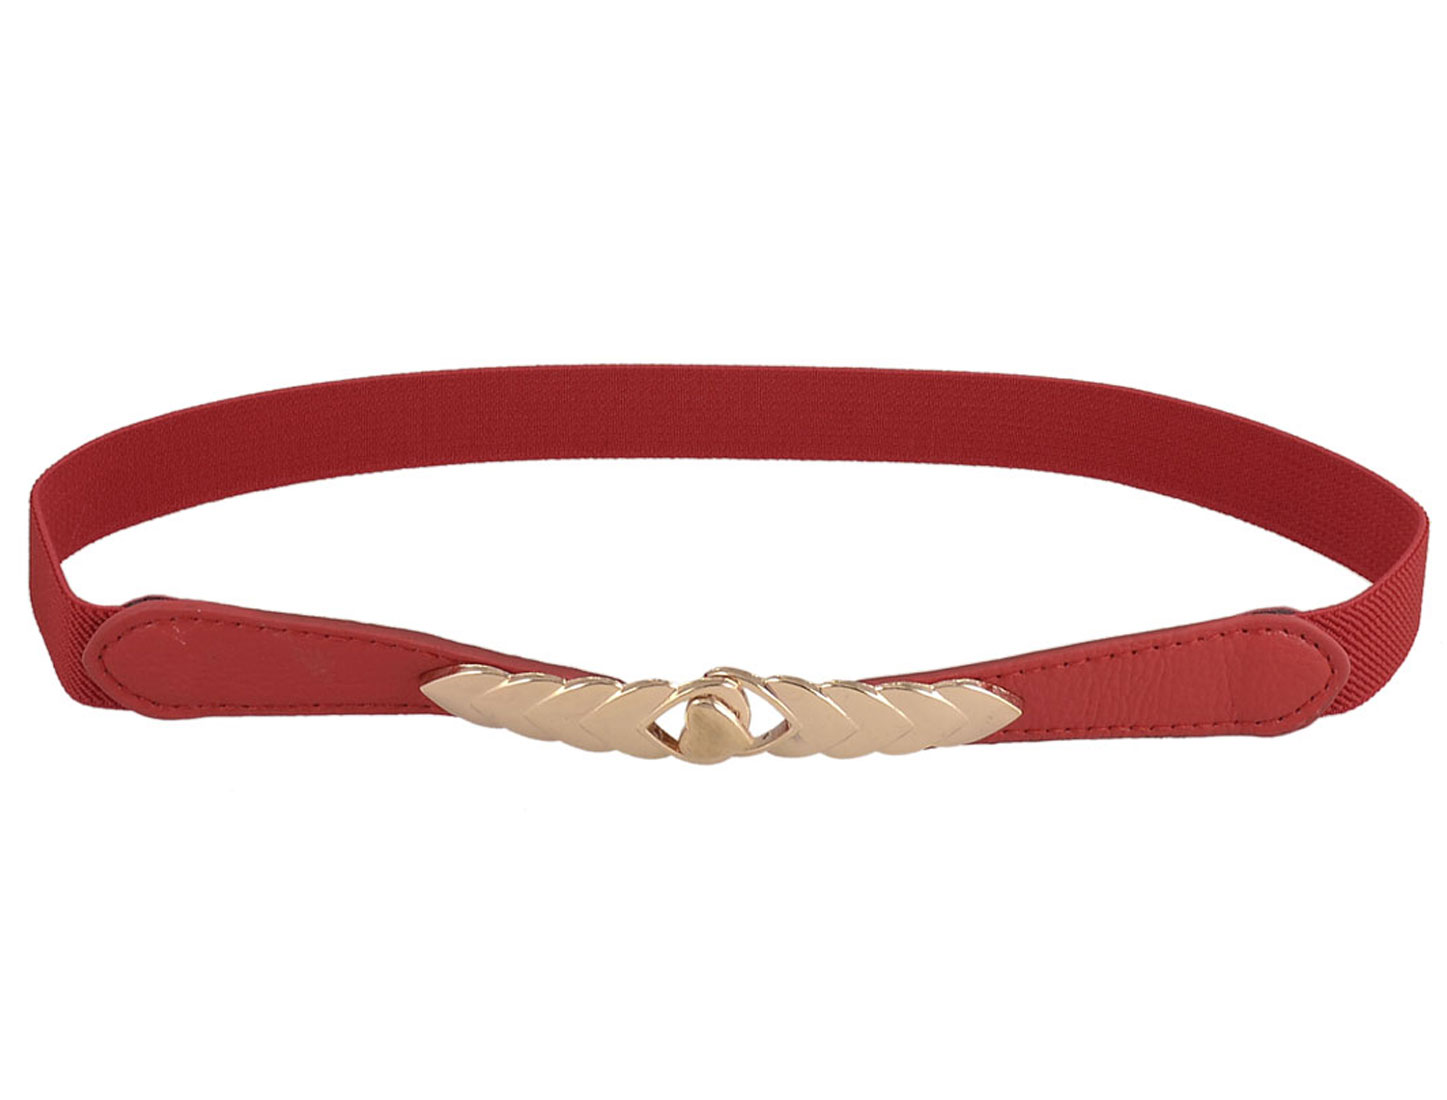 "Lady Red Gold Tone Metal Interlocking Buckle 0.8"" Width Thin Elastic Waist Belt"